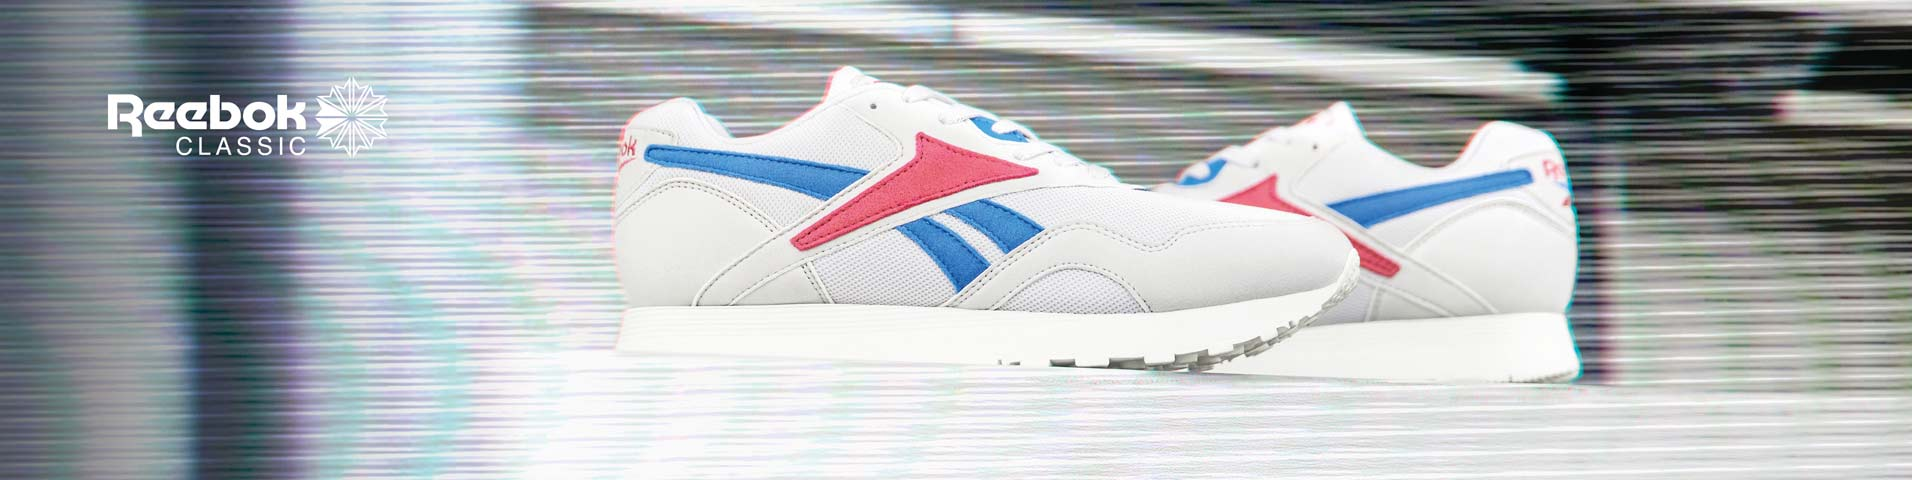 Women s Shoes from Reebok Classic ae3fa1a99